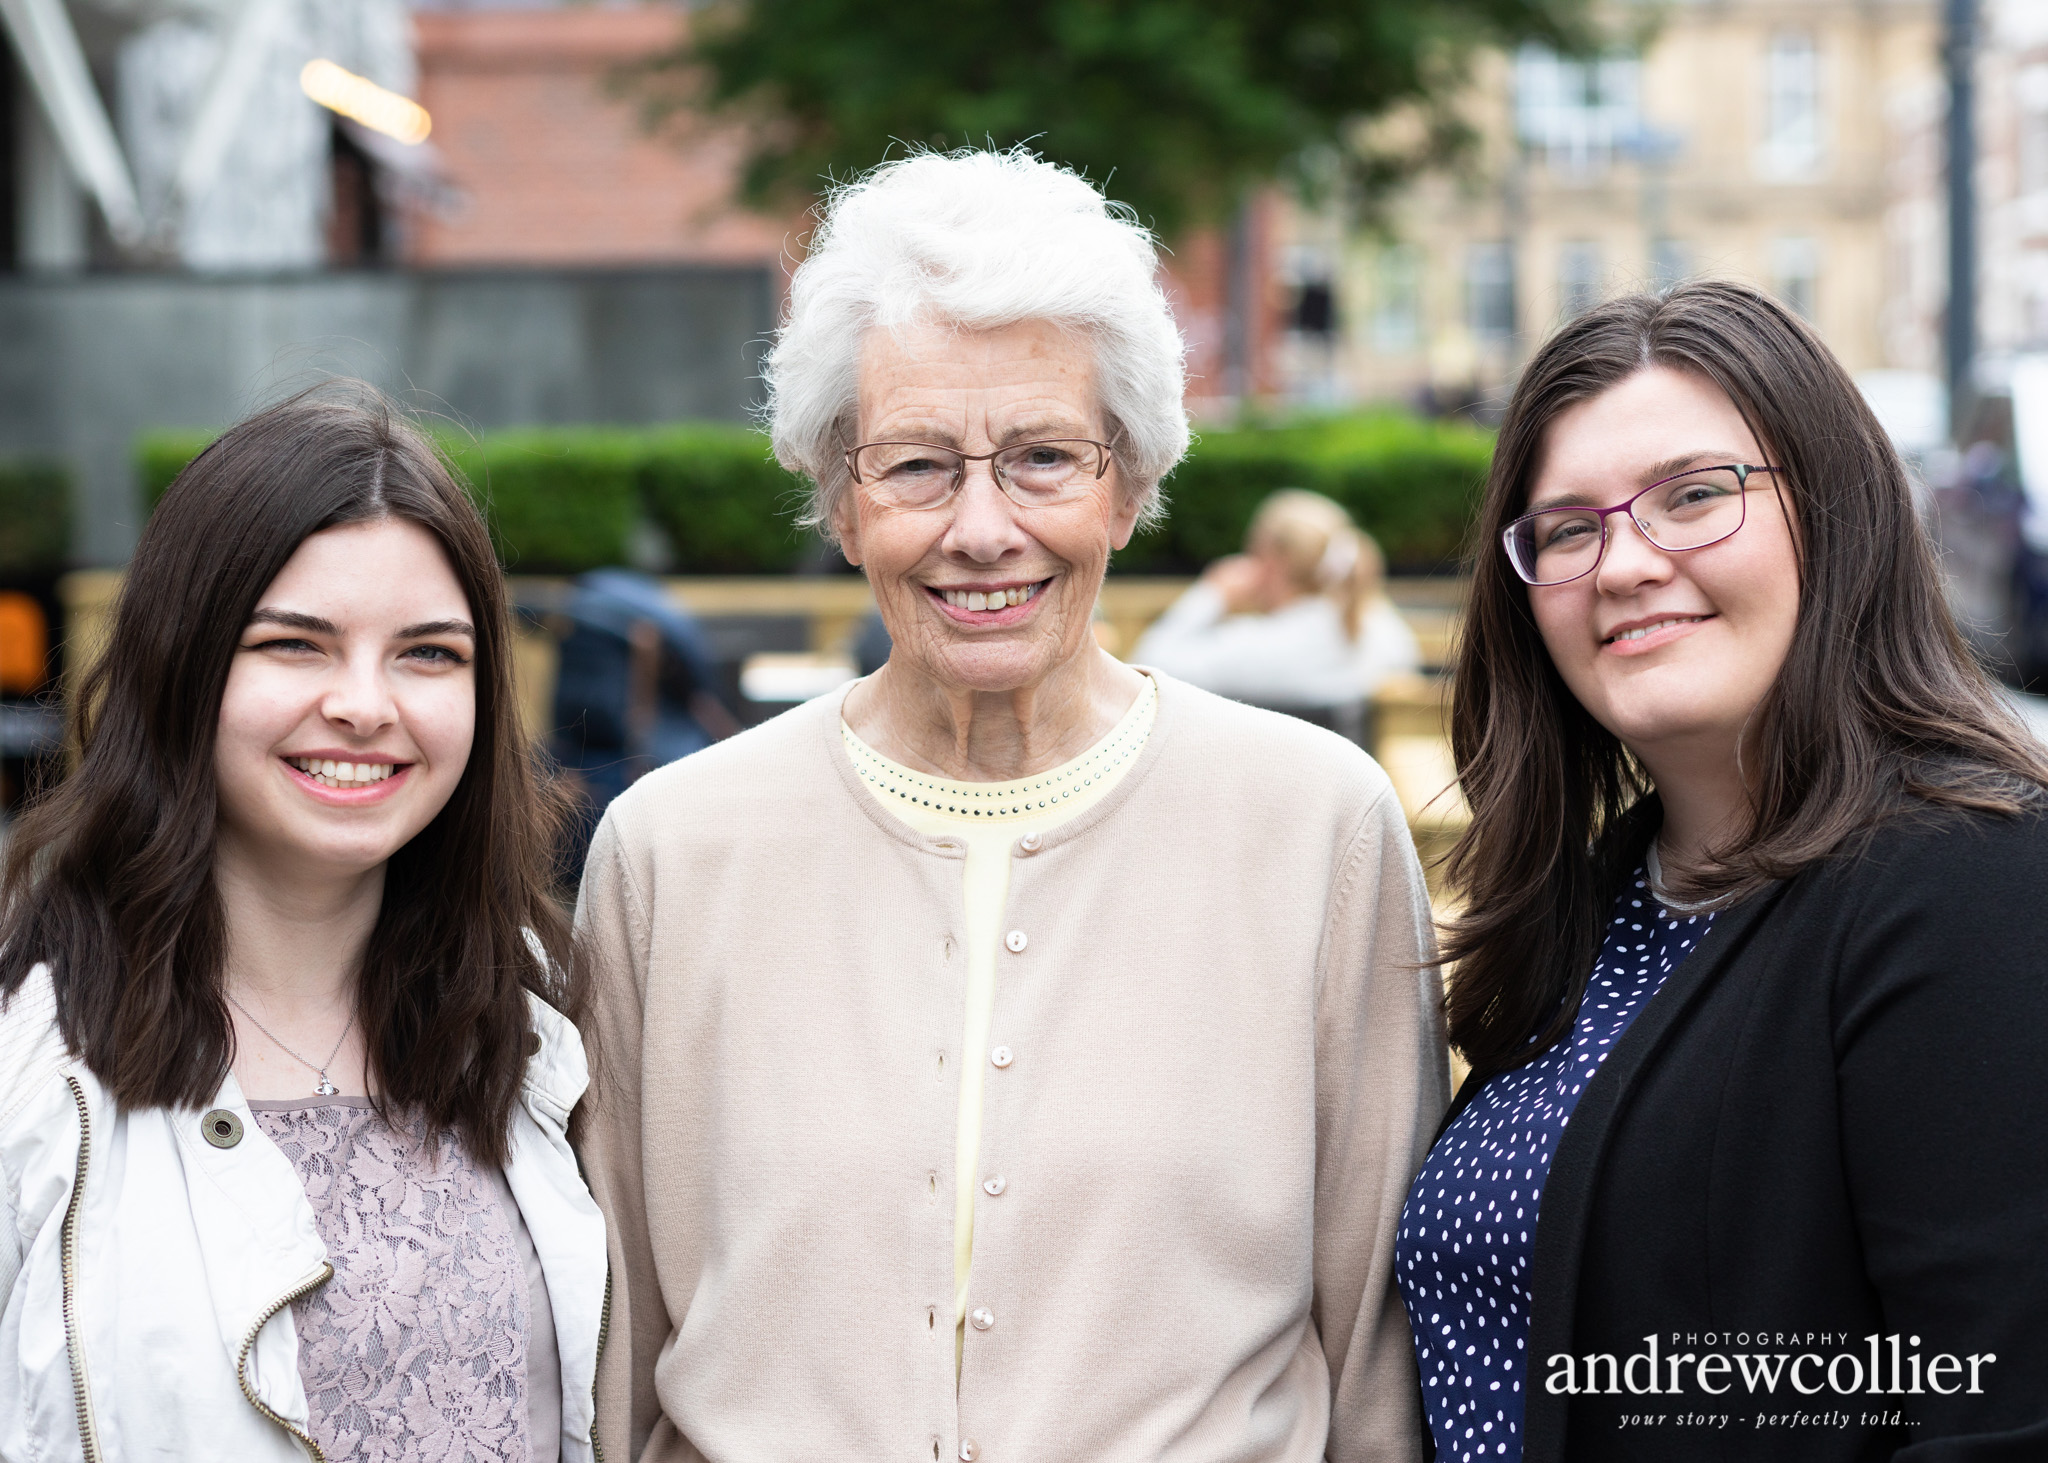 Urban family portrait of Grandmother and granddaughters in Liverpool